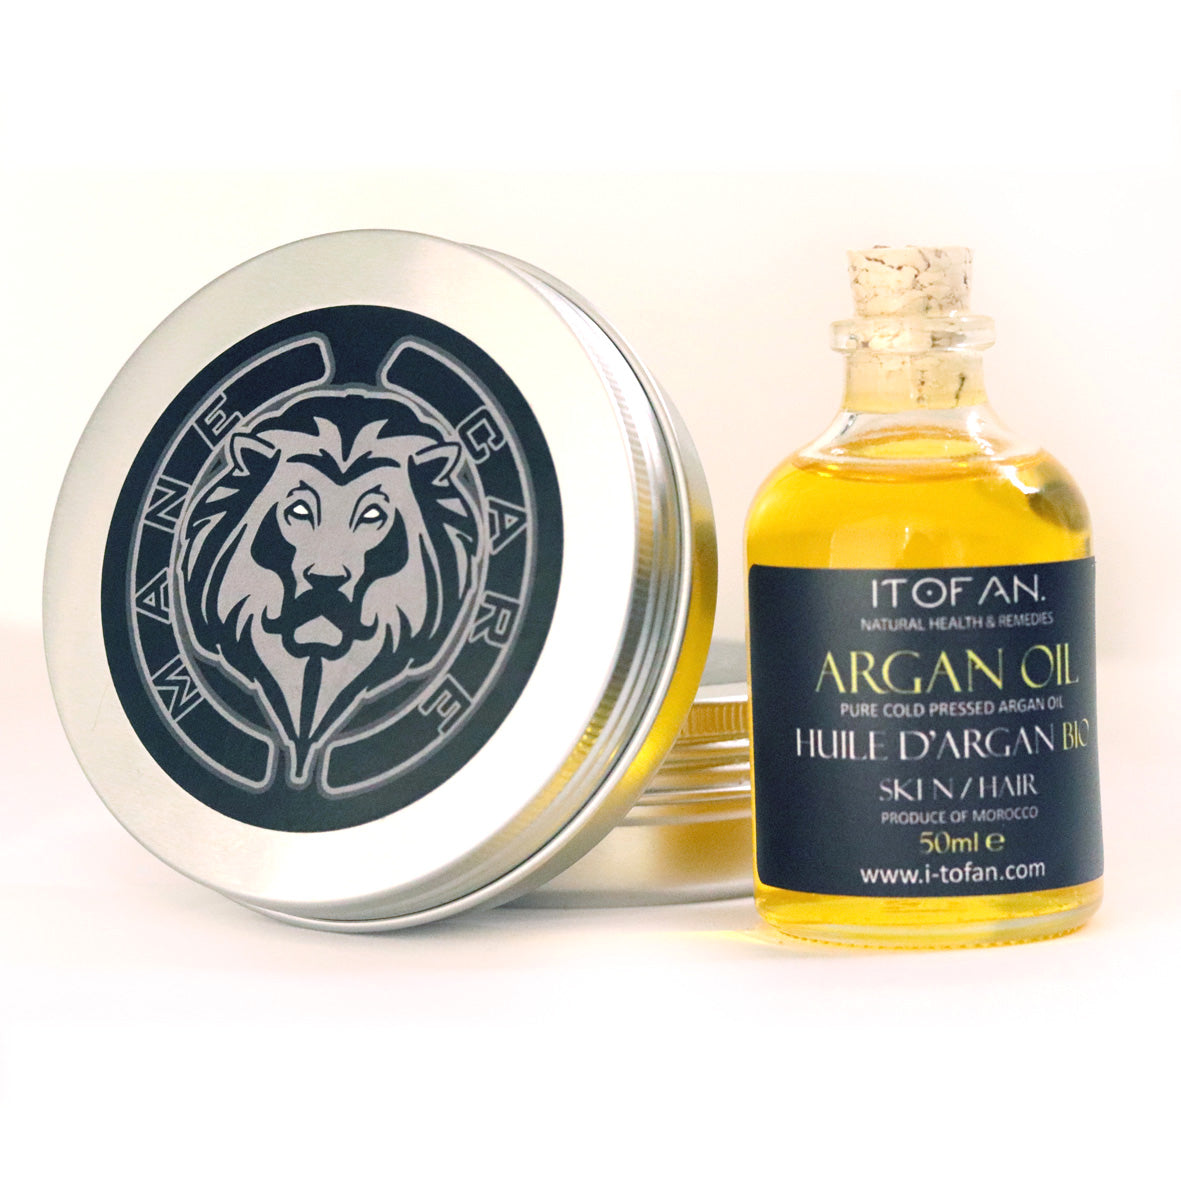 Upgraded Beard Grooming Kit w/Beard Conditioner Beard Cream & Beard Oil - Argan or Baobab Oil